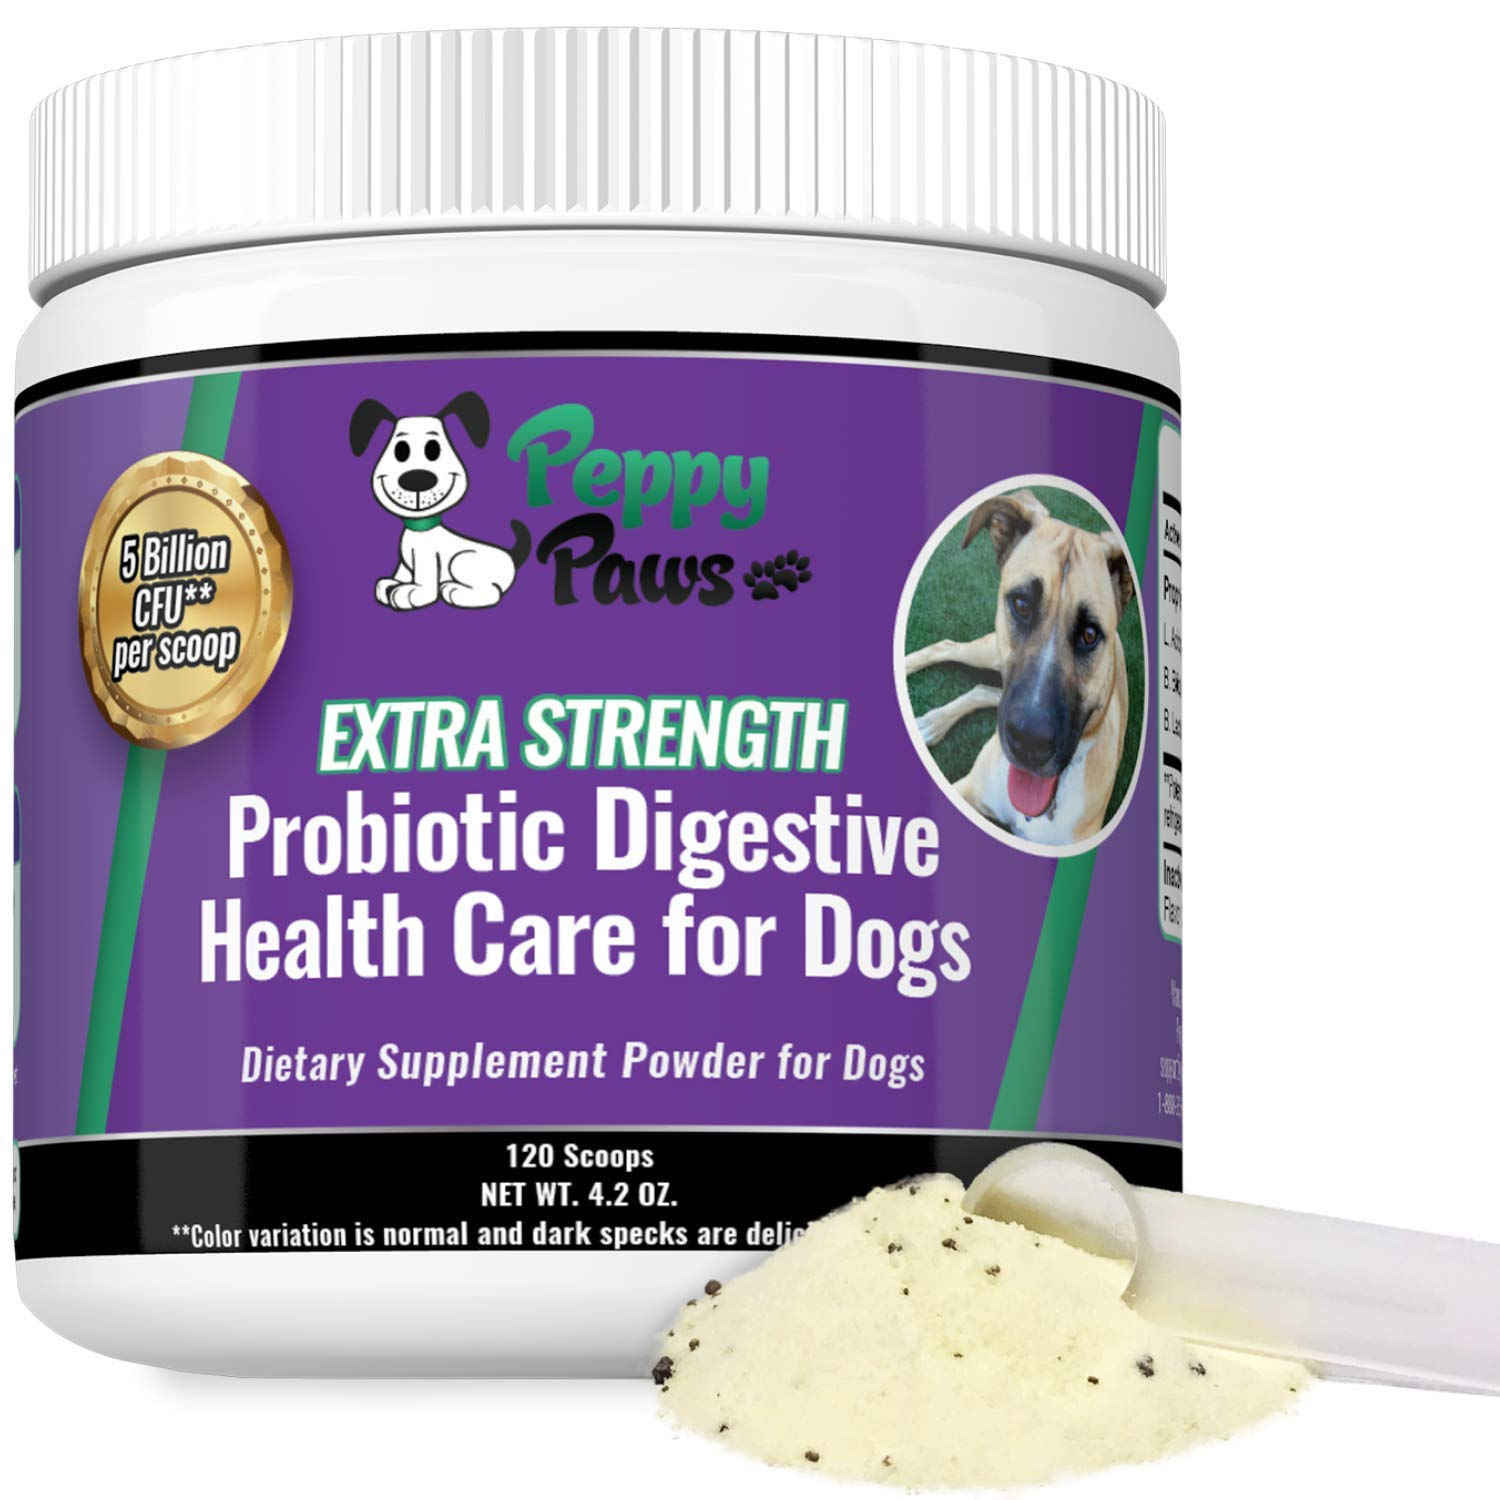 Probiotics for Dogs - Improves Dog Diarrhea - Constipation - Gas - Yeast - Bad Breath - Dog Allergies - All Natural Probiotic Powder - 5 Billion CFUs - Probiotics for Puppies to Seniors - 120 Scoops by Peppy-Paws